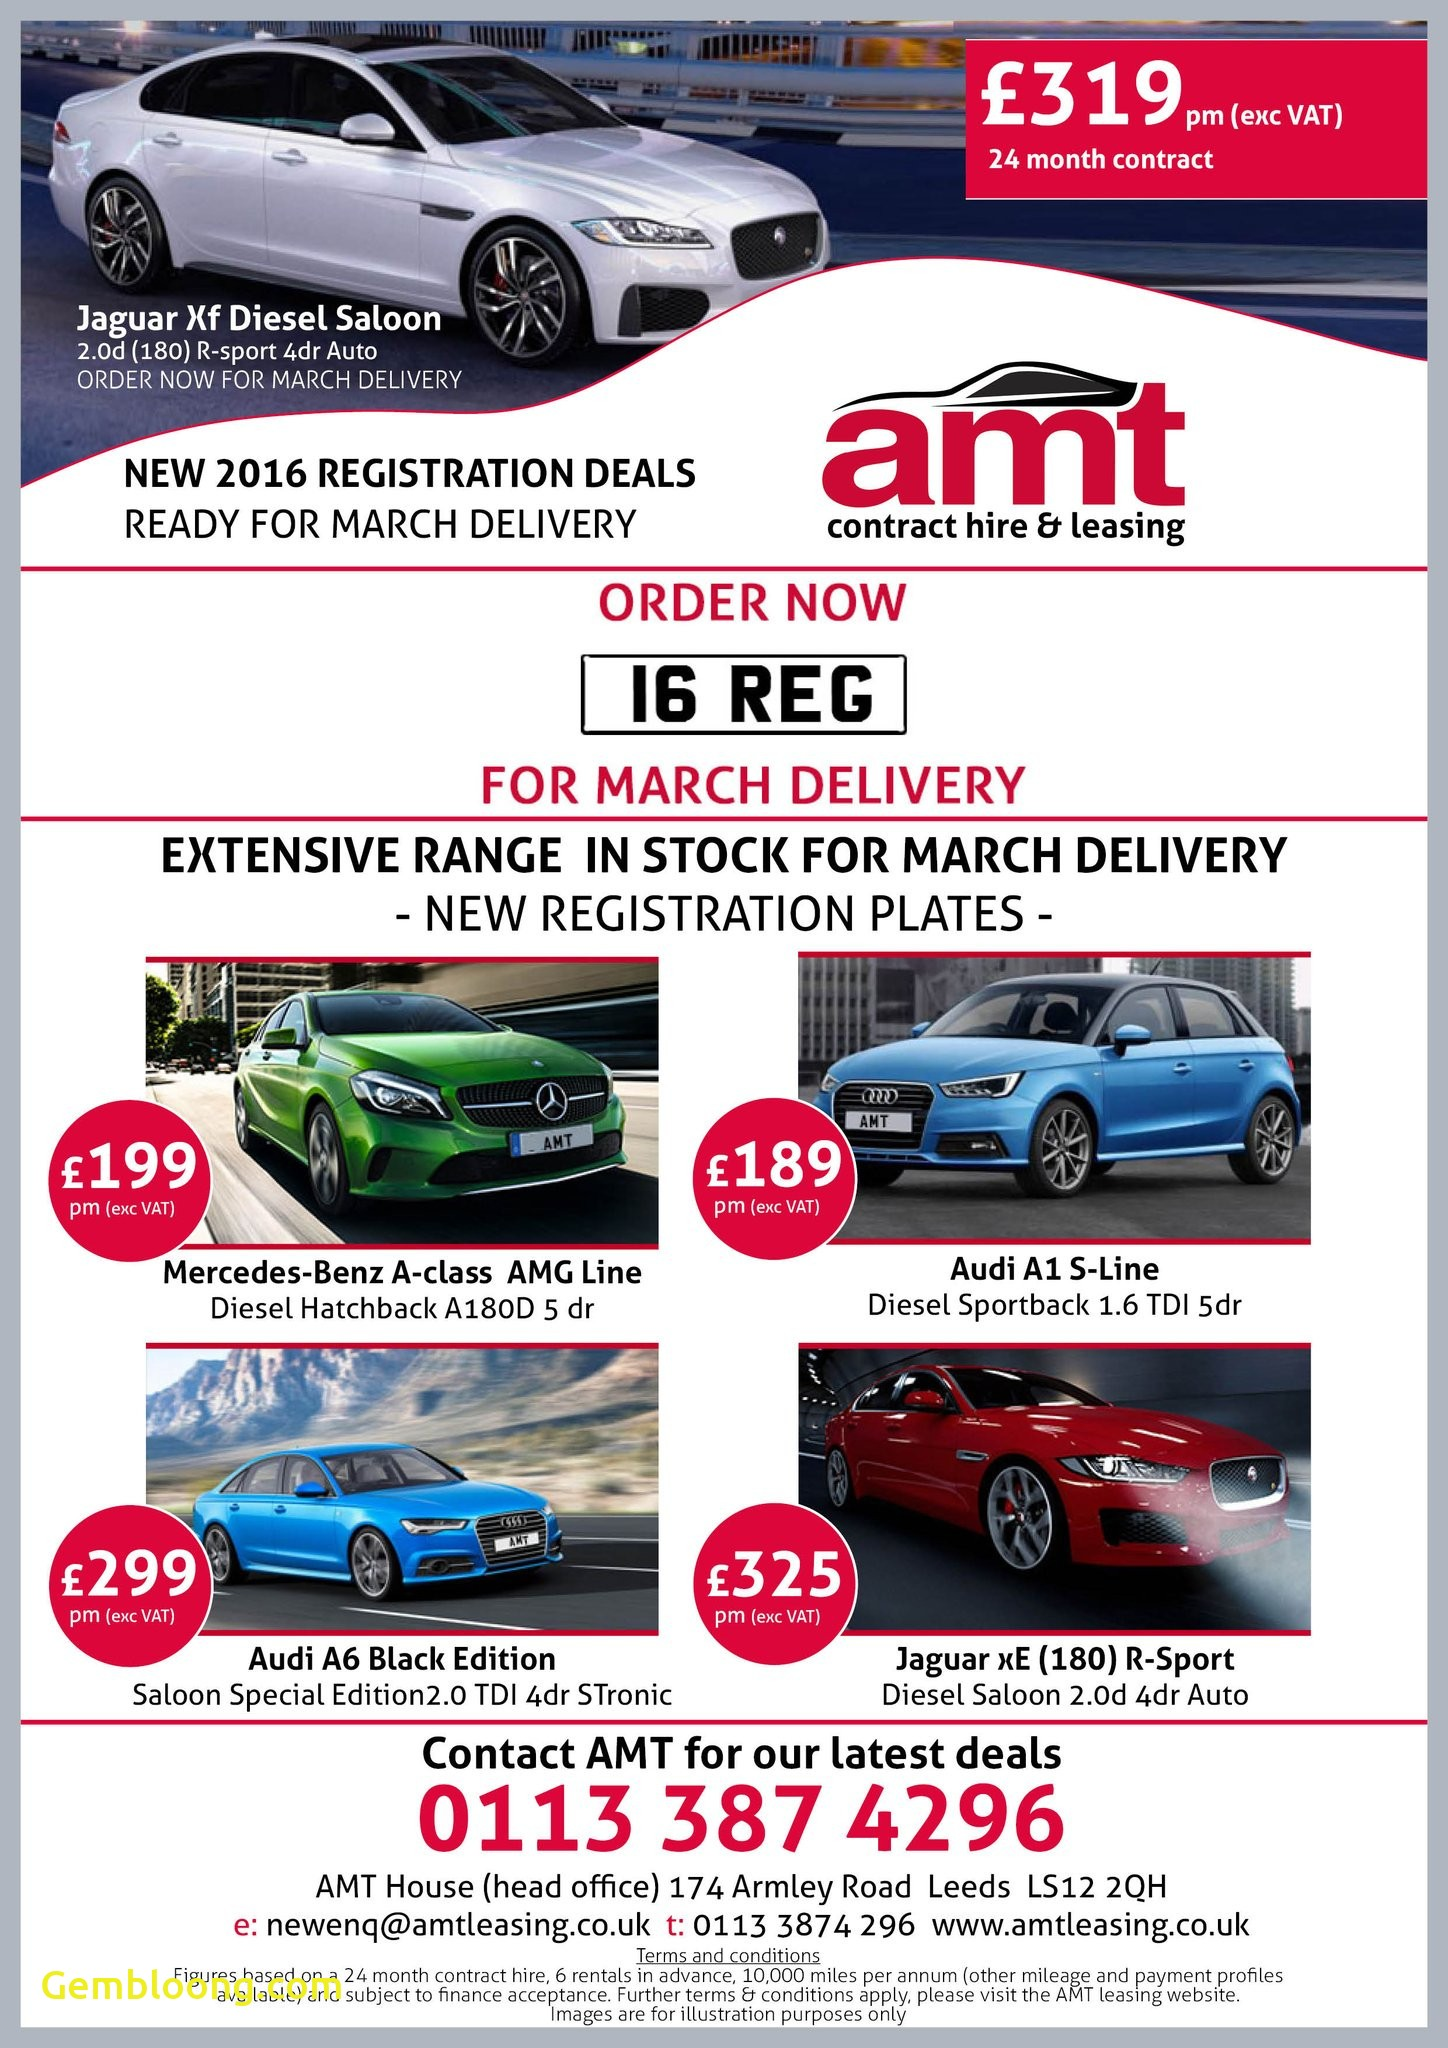 luxury hatchback amt leasing on quotnew 16plate vehicle registration of luxury hatchback